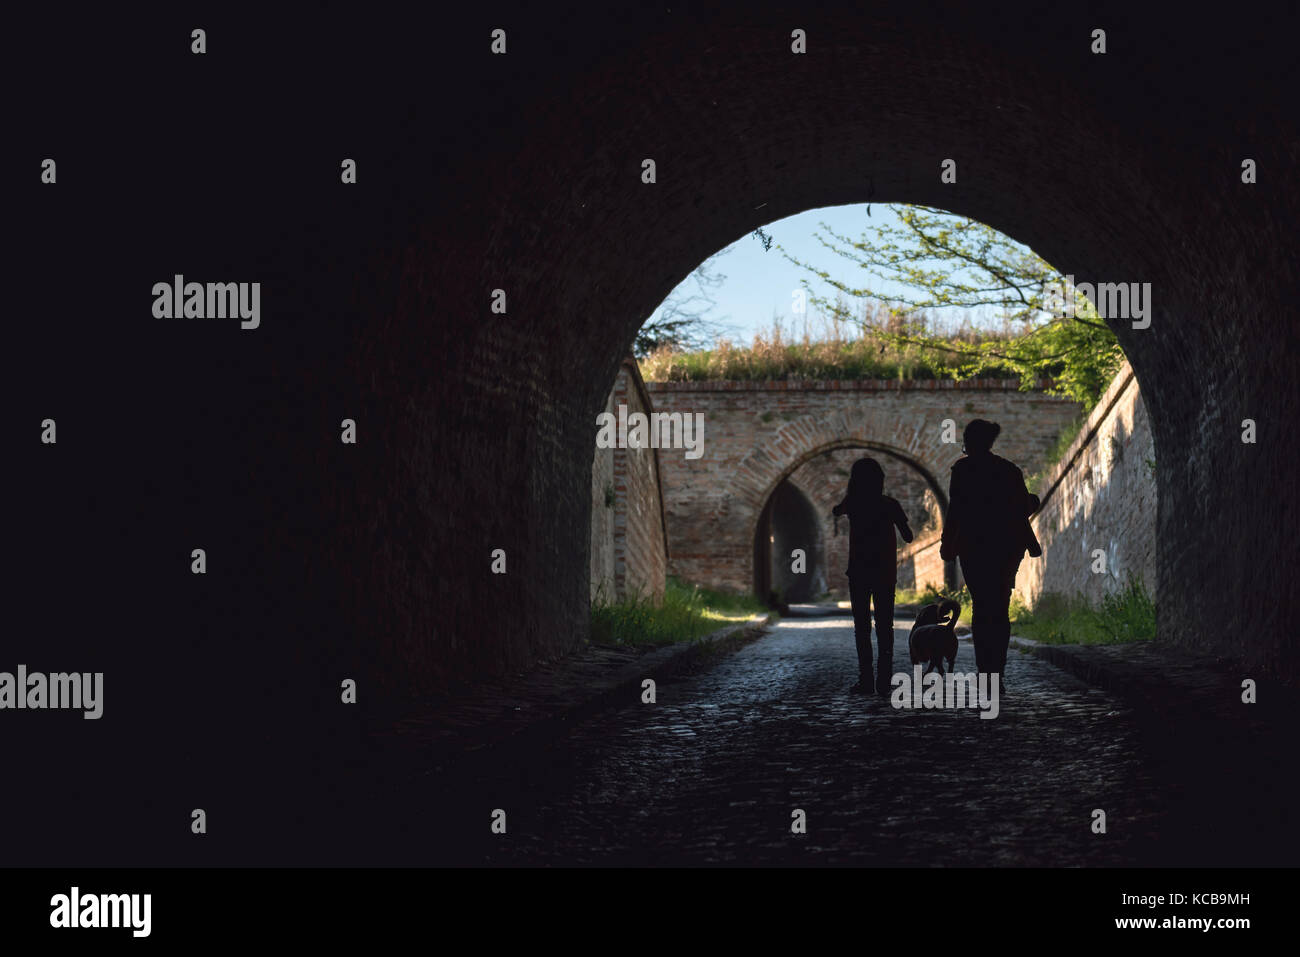 Mother and daughter walking in a tunnel with a dog - Stock Image